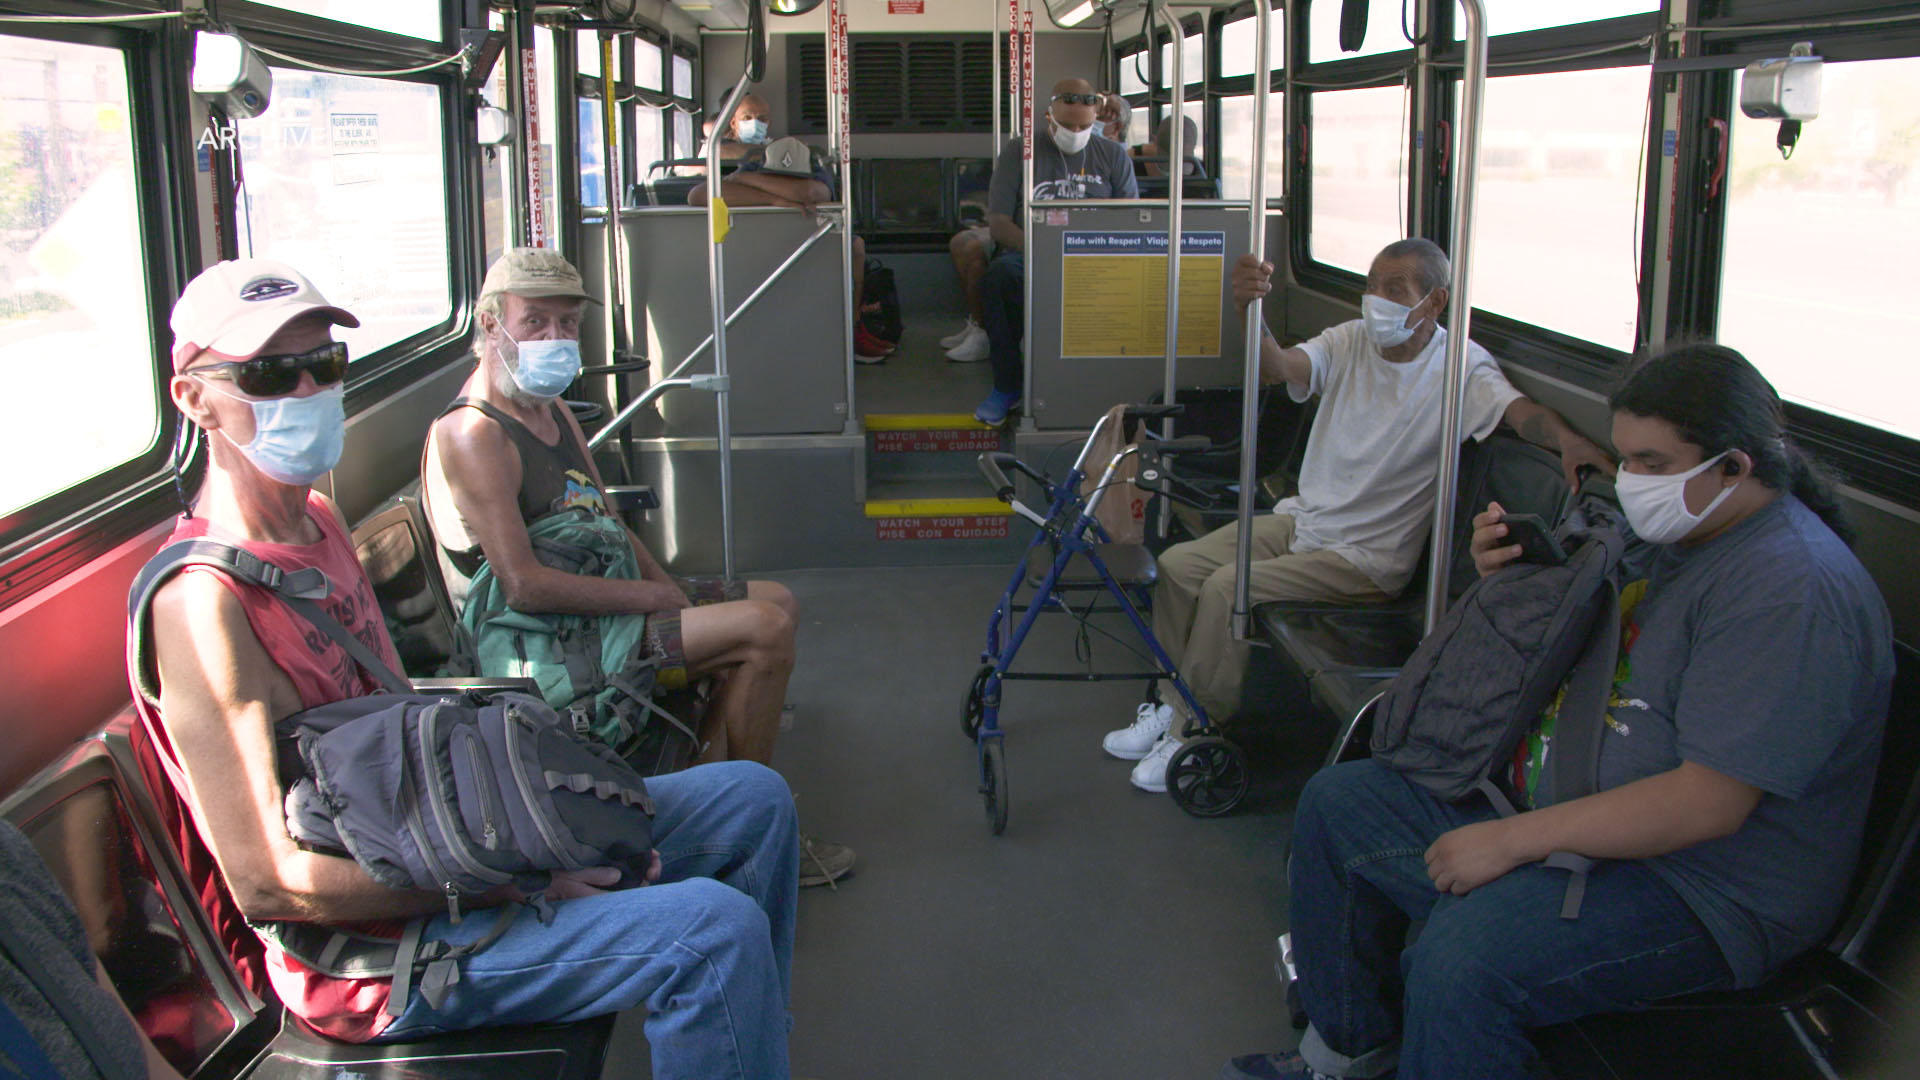 Community members travel by bus during the COVID-19 pandemic.